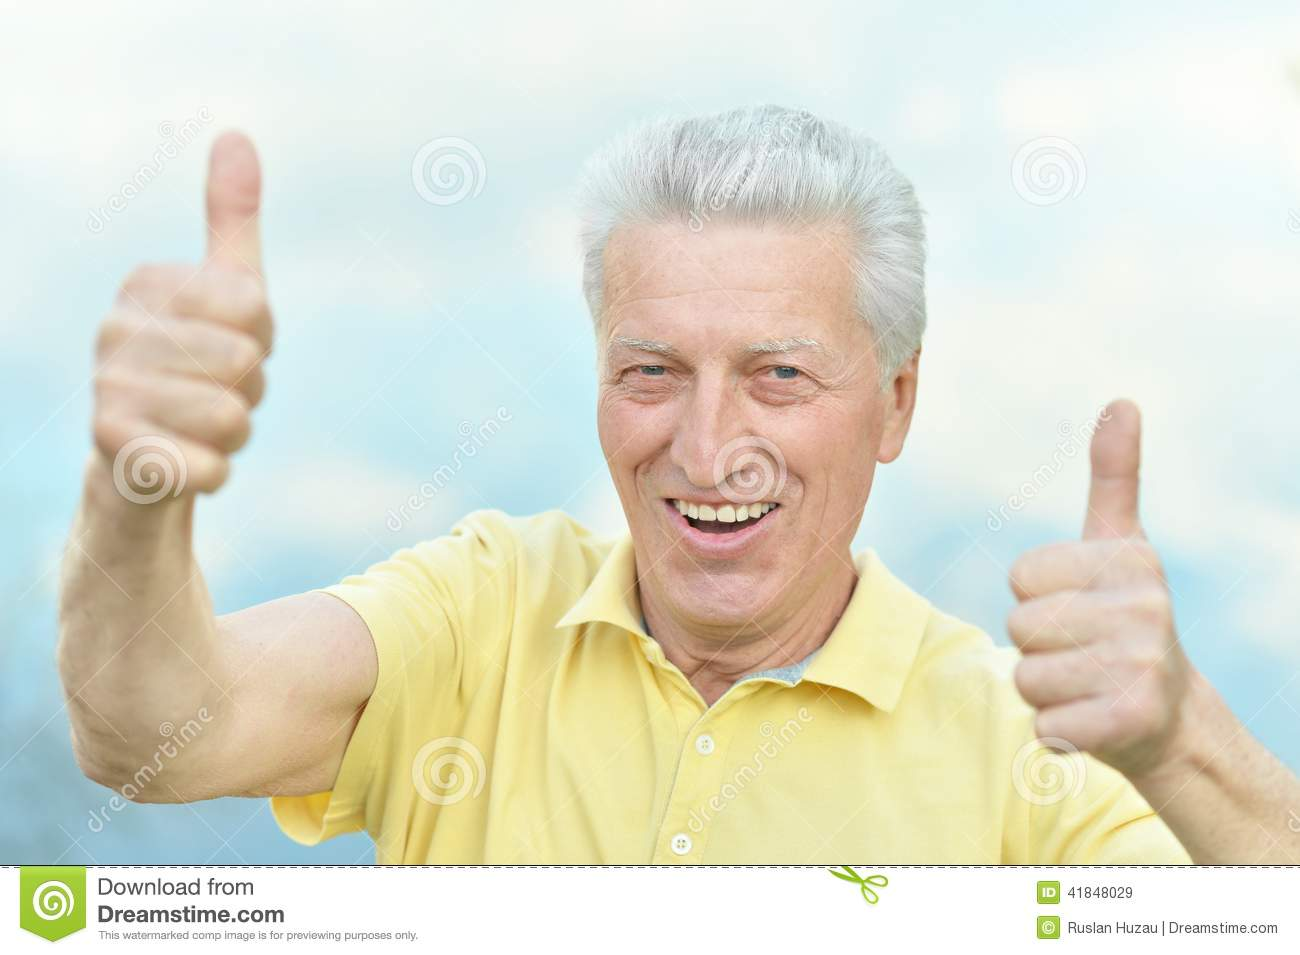 Old man showing thumbs up on blue sky background.